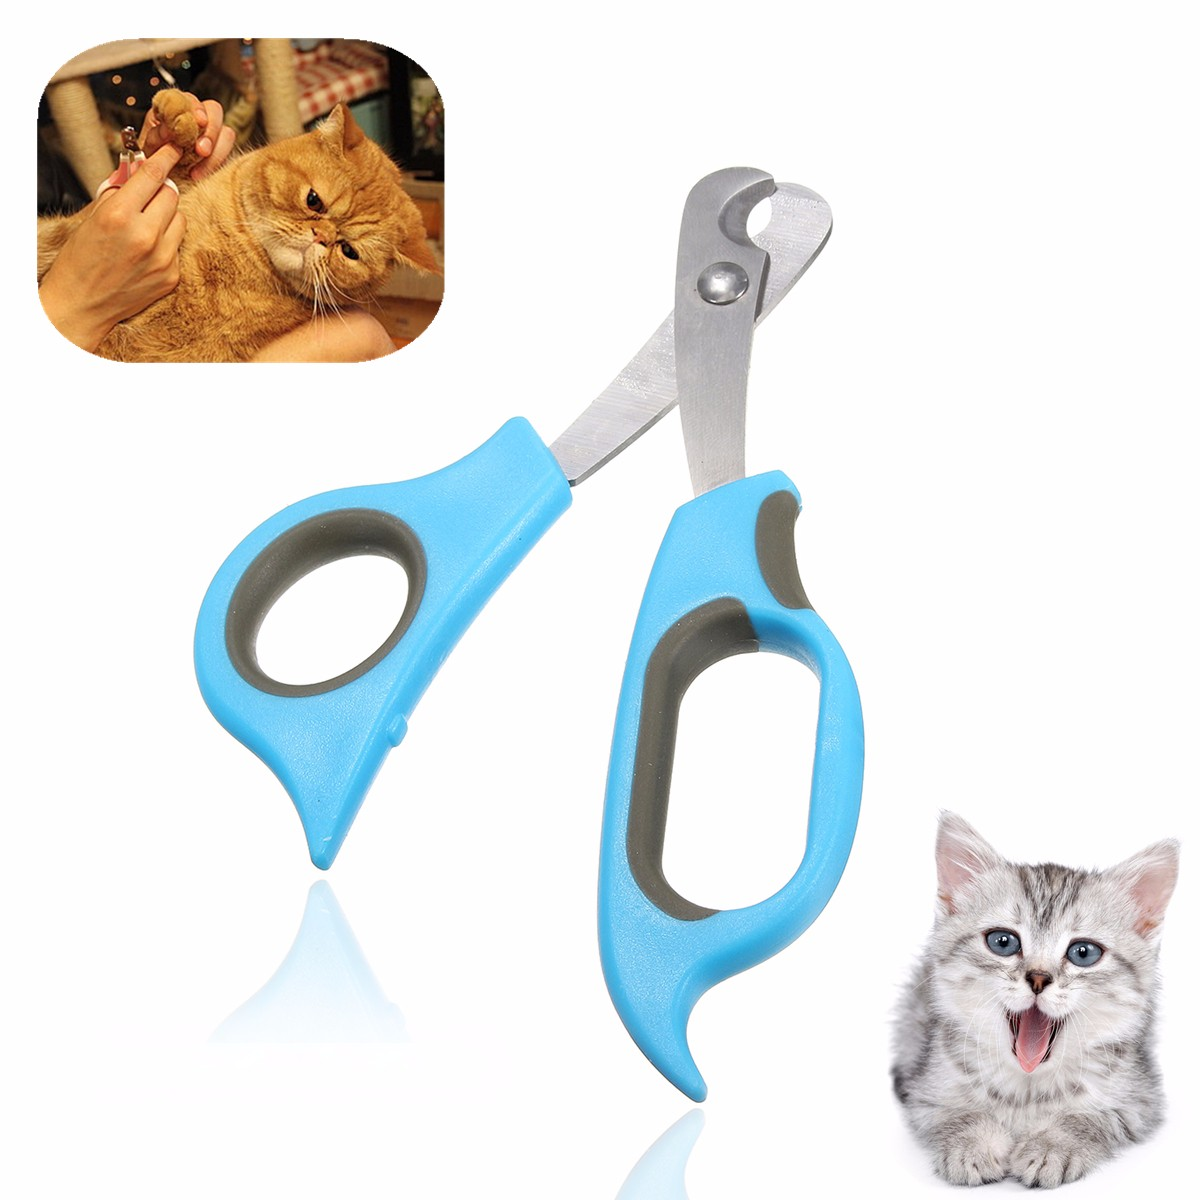 Kitten Doggy Grooming Scissors Cat Dog Claw Nail Clippers Pet Animals Rabbit Claw Toe Stainless Steel Cat Grooming Supplies